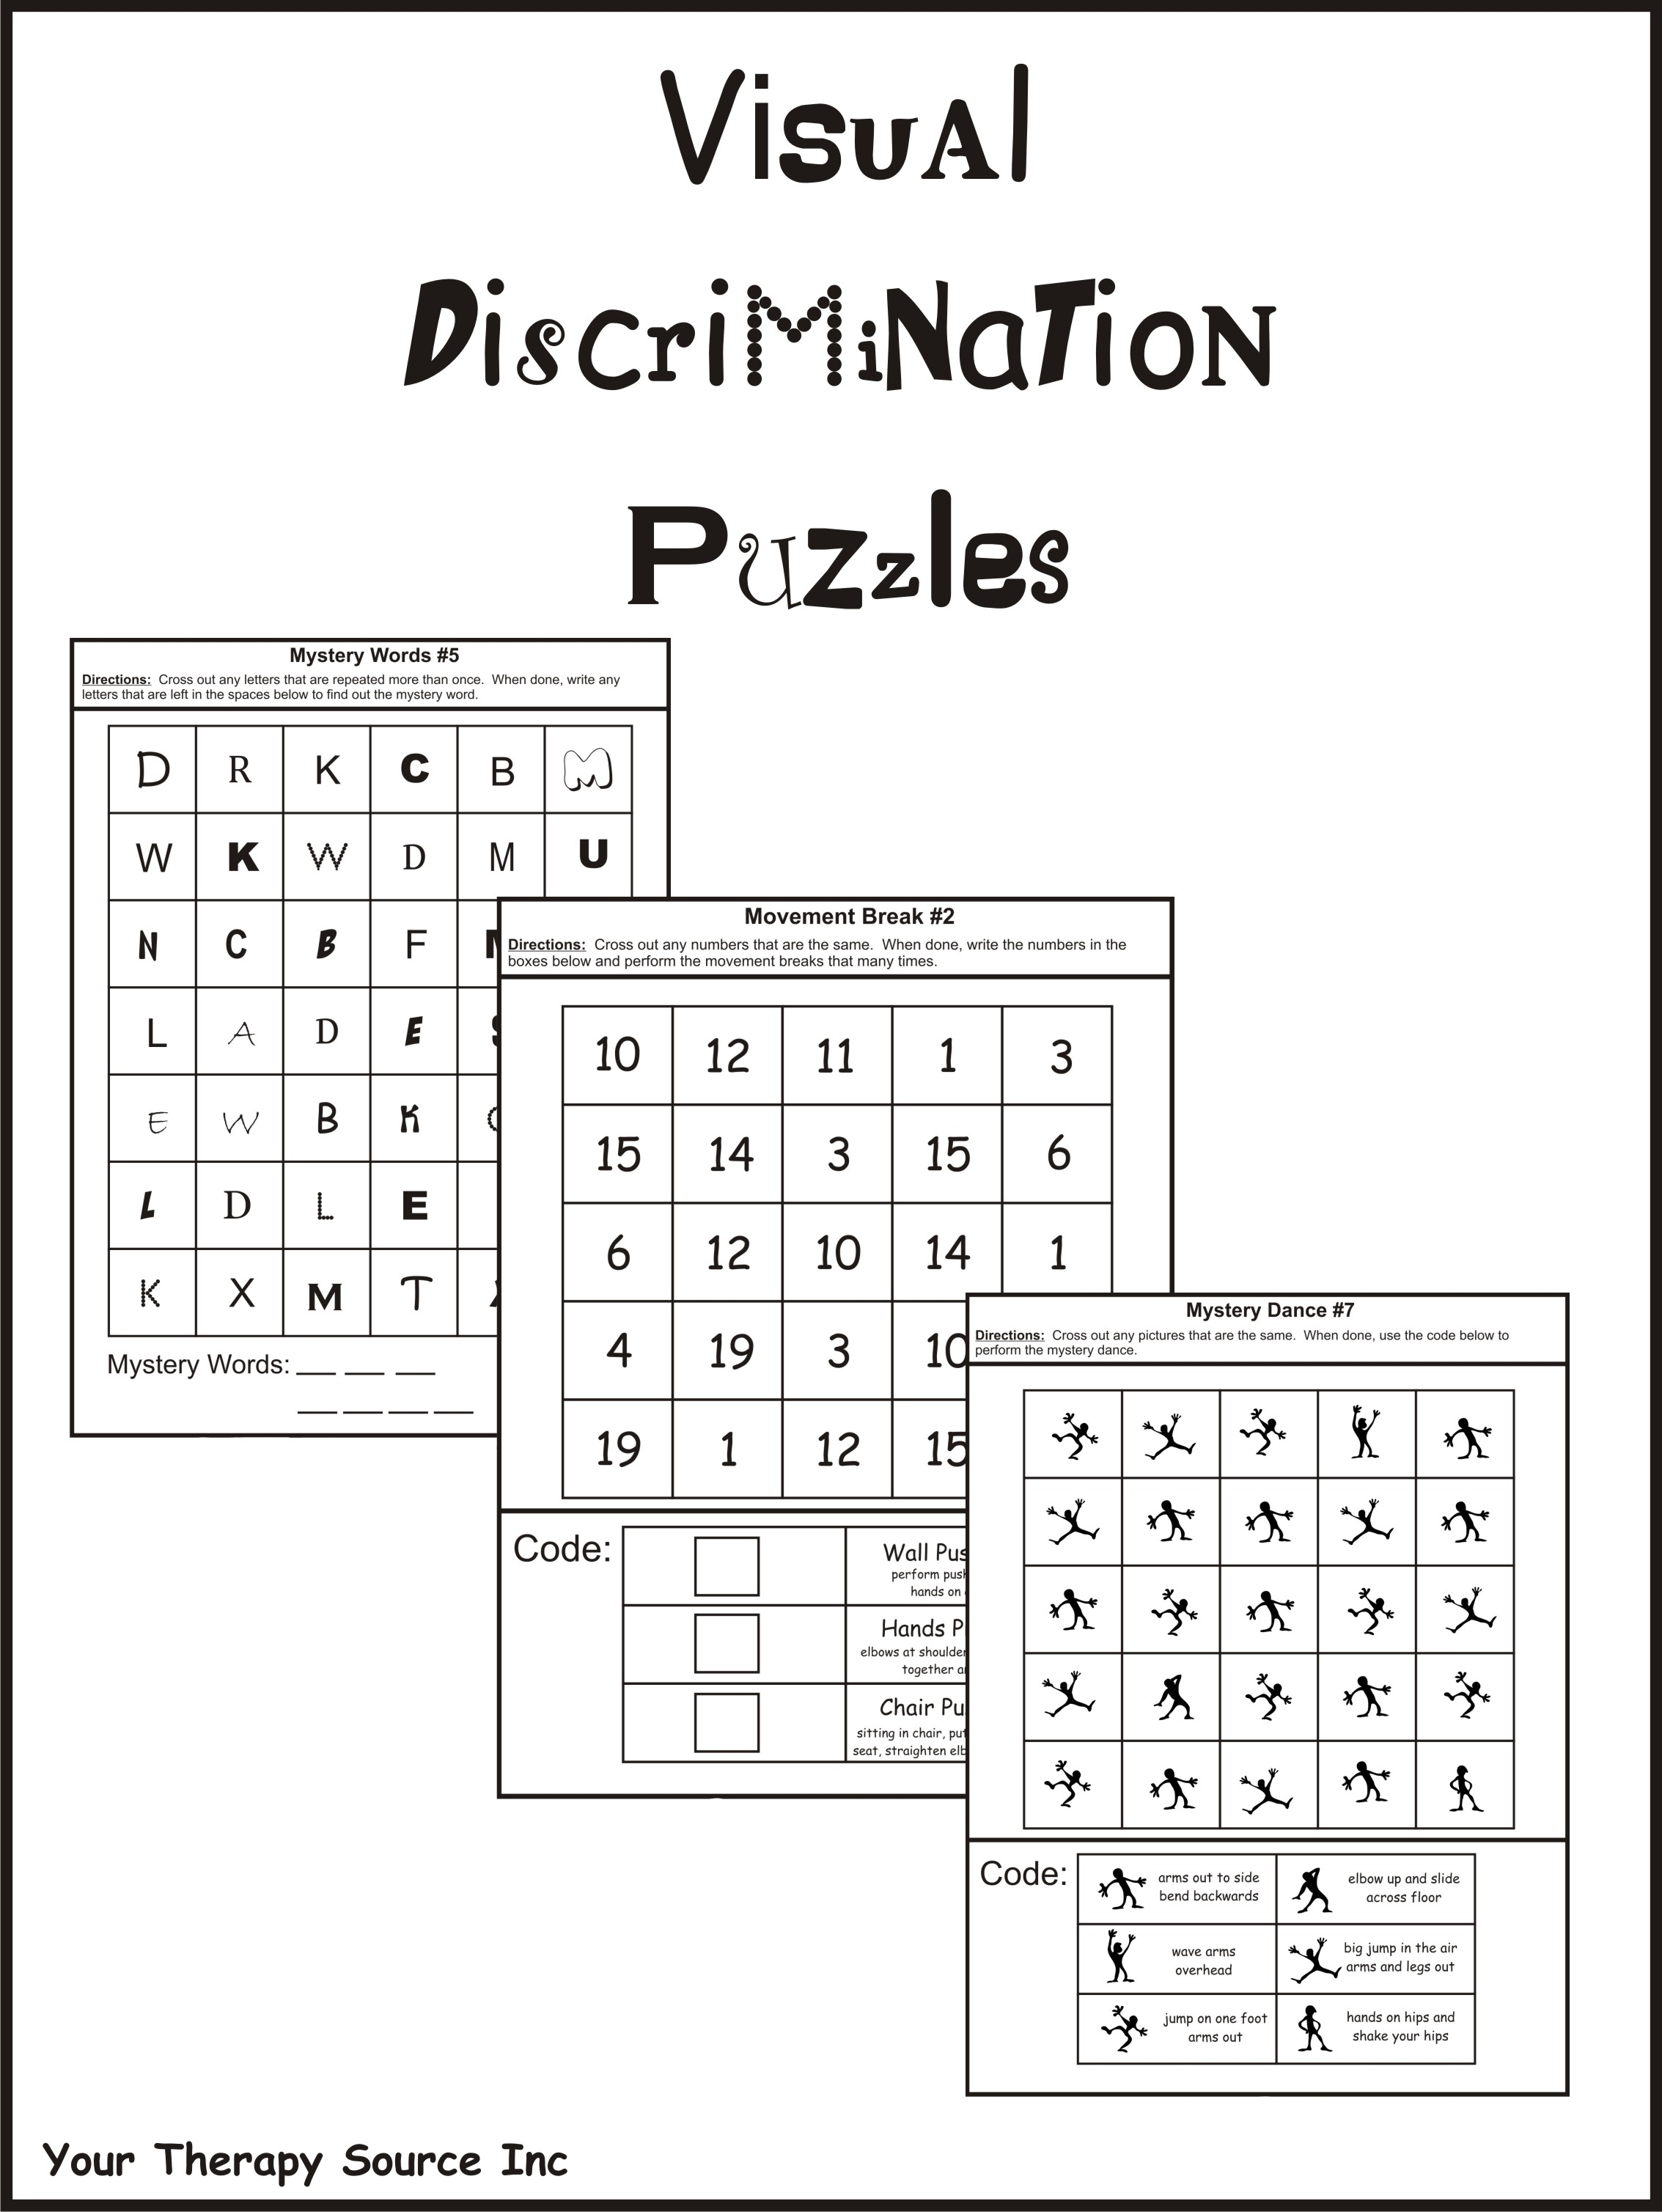 Visual Discrimination Puzzles